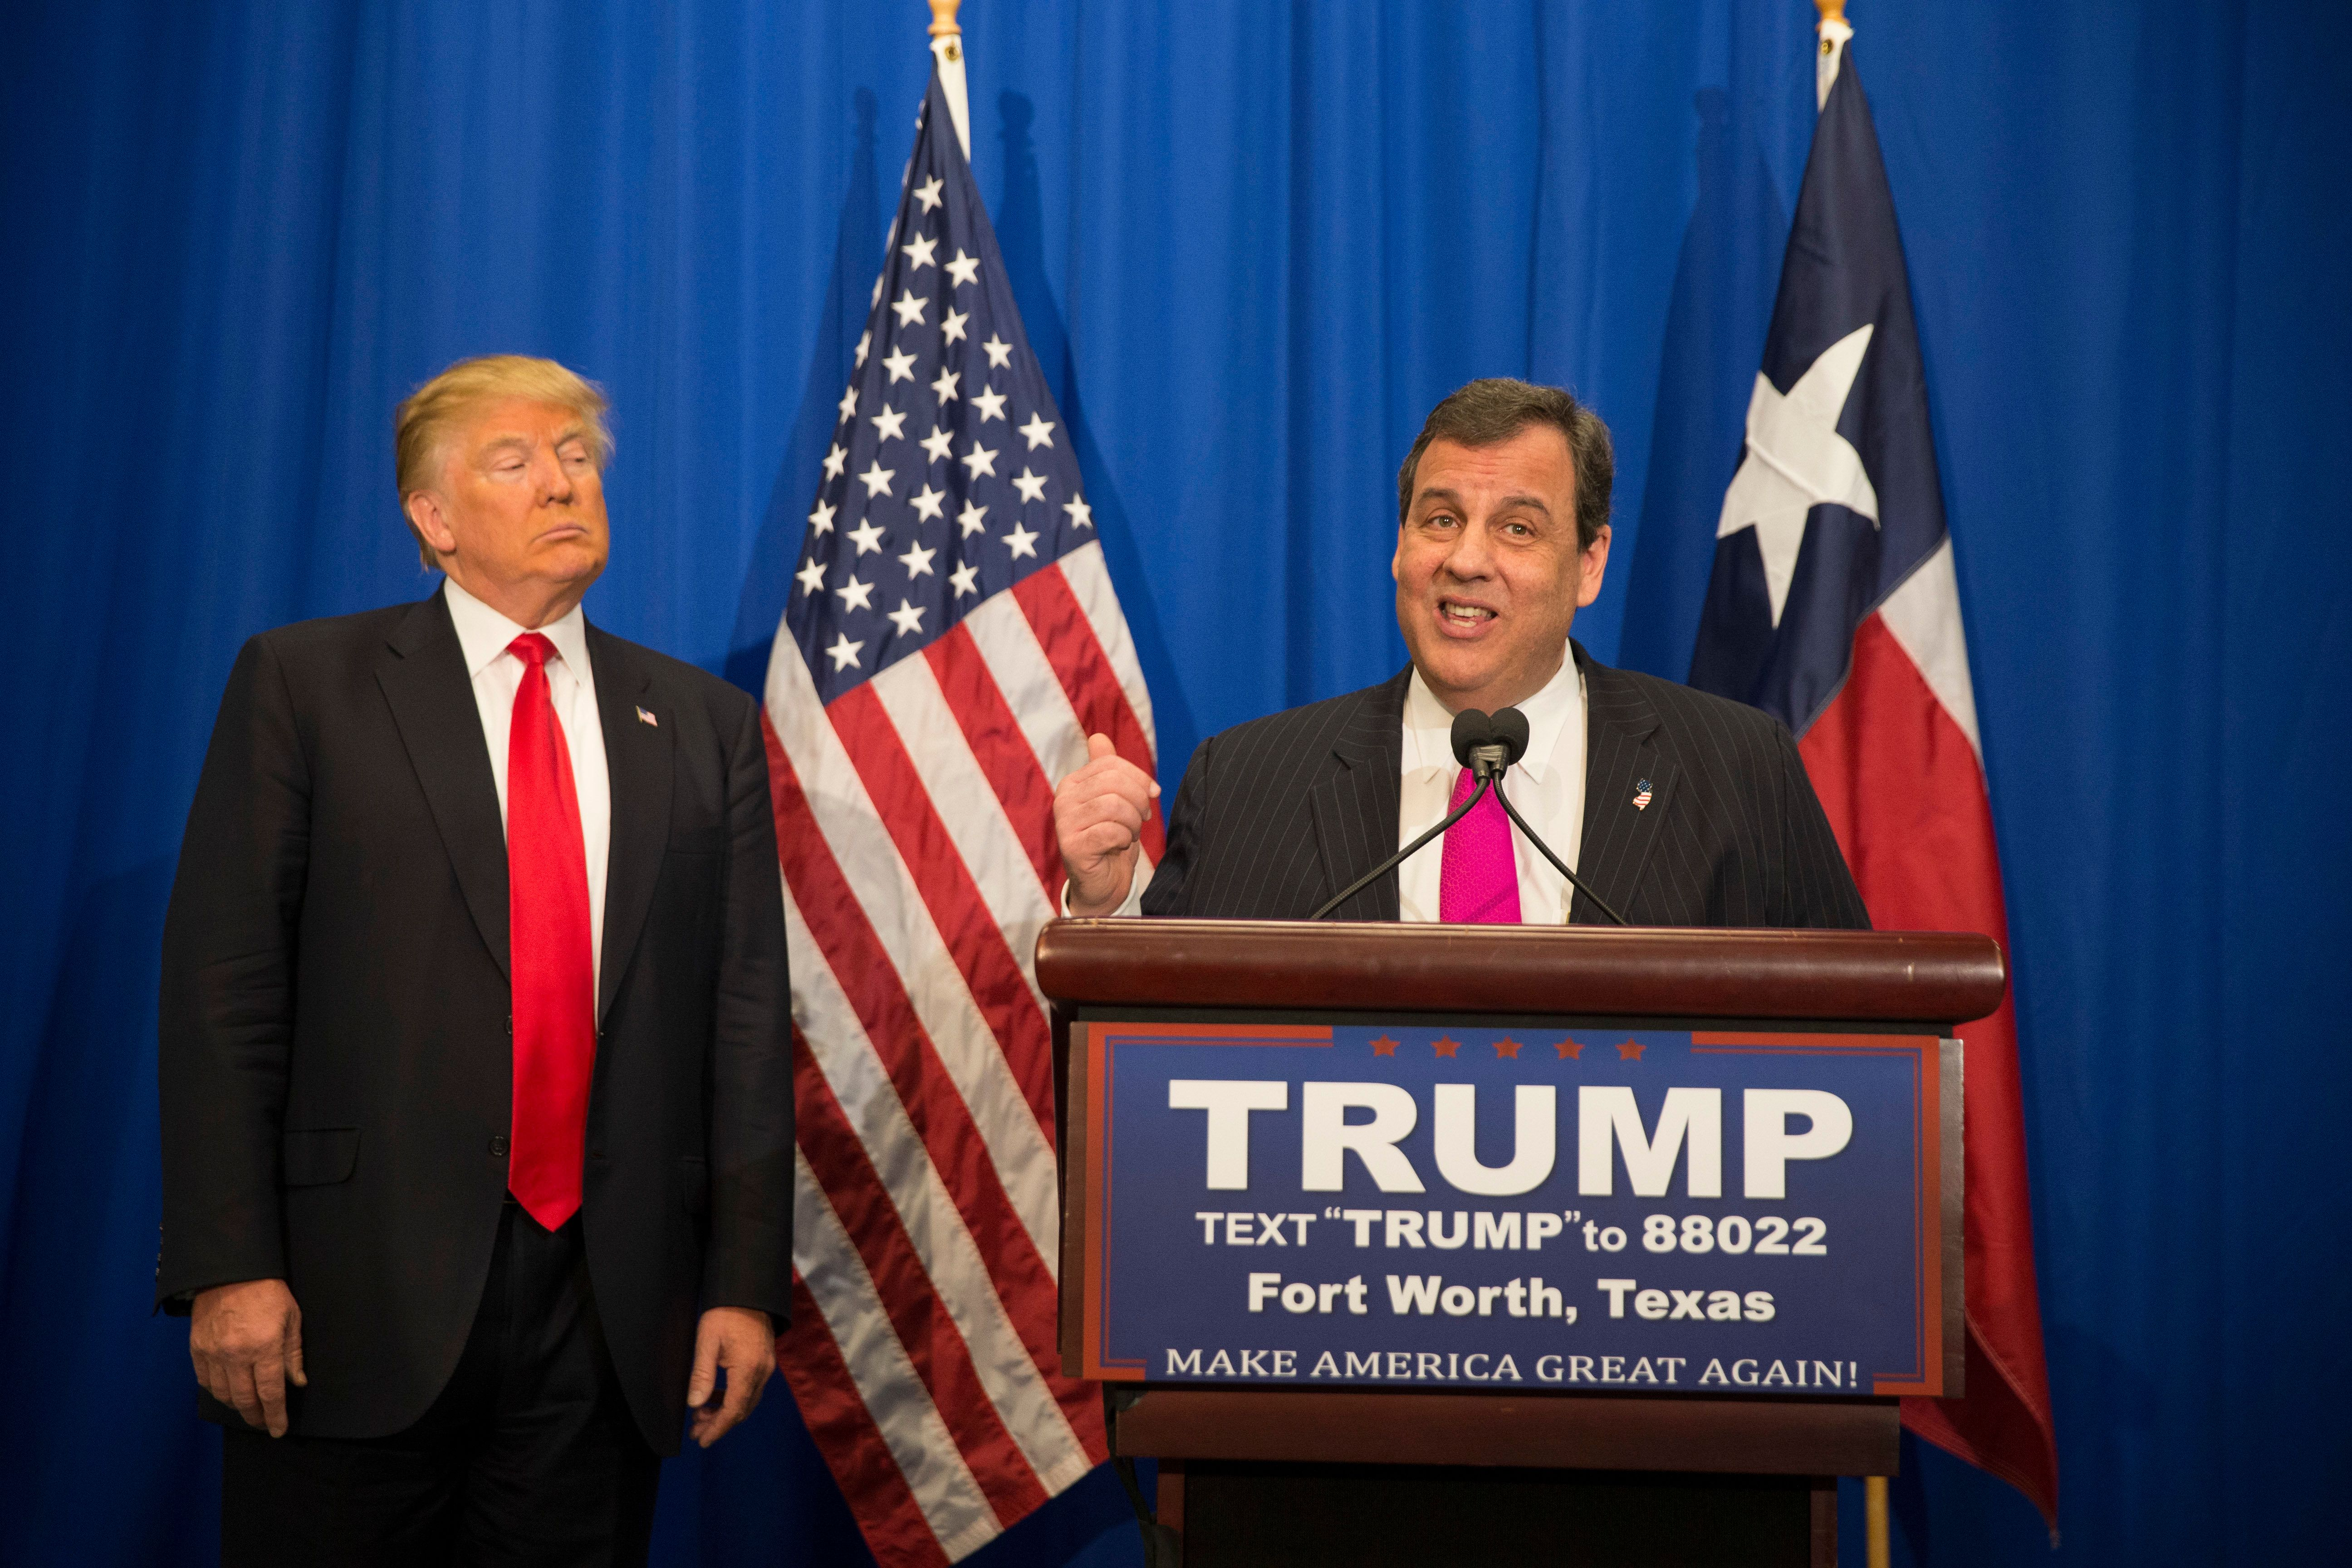 Republican presidential candidate Donald Trump get the endorsement of former candidate New Jersey Gov. Chris Christie during a rally at the Fort Worth Convention Center. Texas is the big prize in the upcoming Super Tuesday primary on March 2. (Photo by Robert Daemmrich Photography Inc/Corbis via Getty Images)